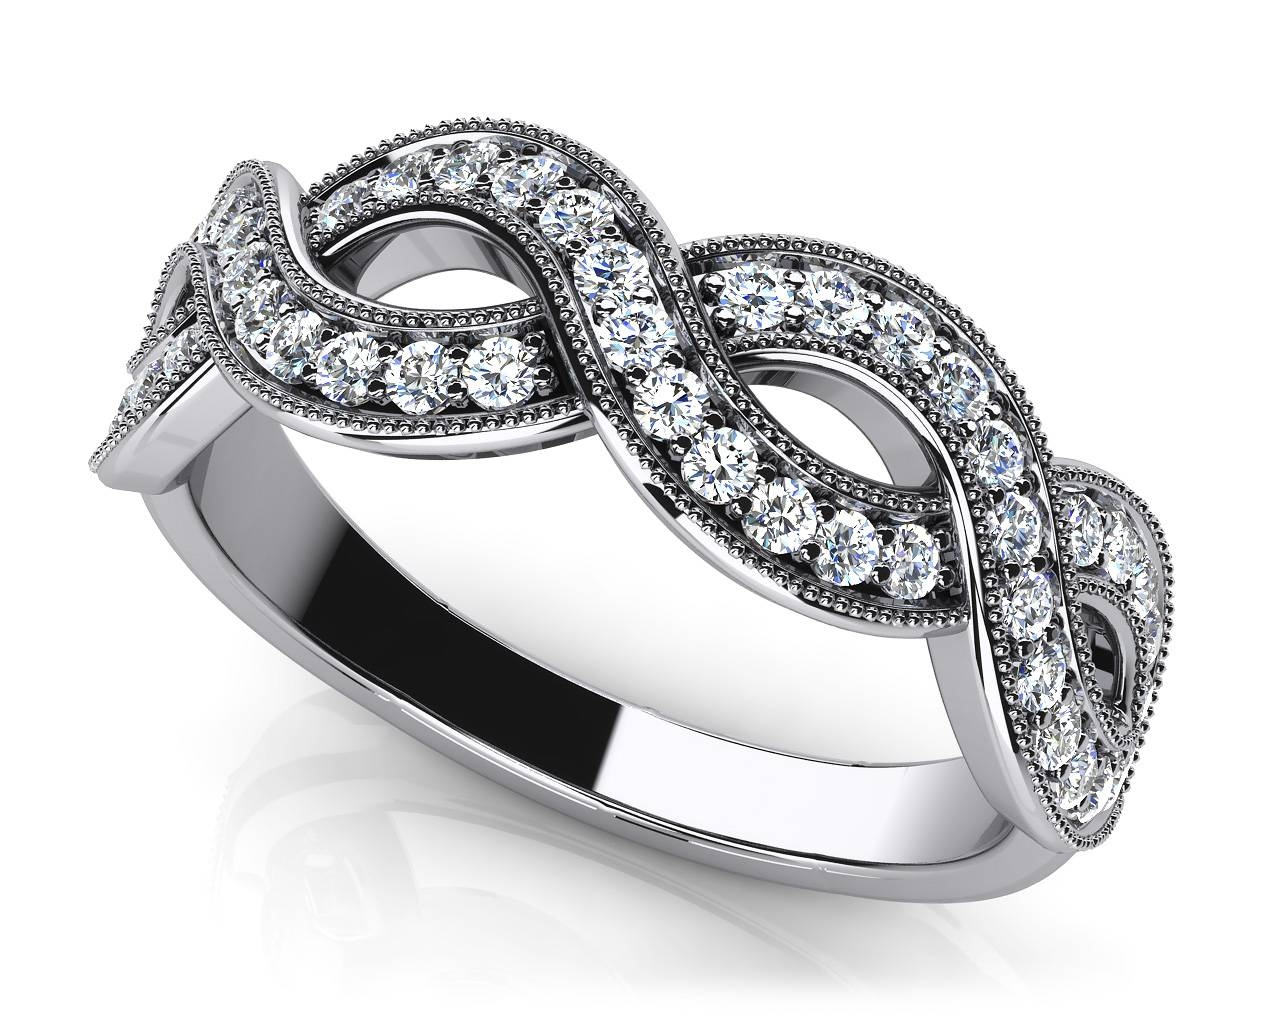 Design Your Own Diamond Anniversary Ring & Eternity Ring Throughout Most Current Anniversary Rings With Baguettes (Gallery 19 of 25)